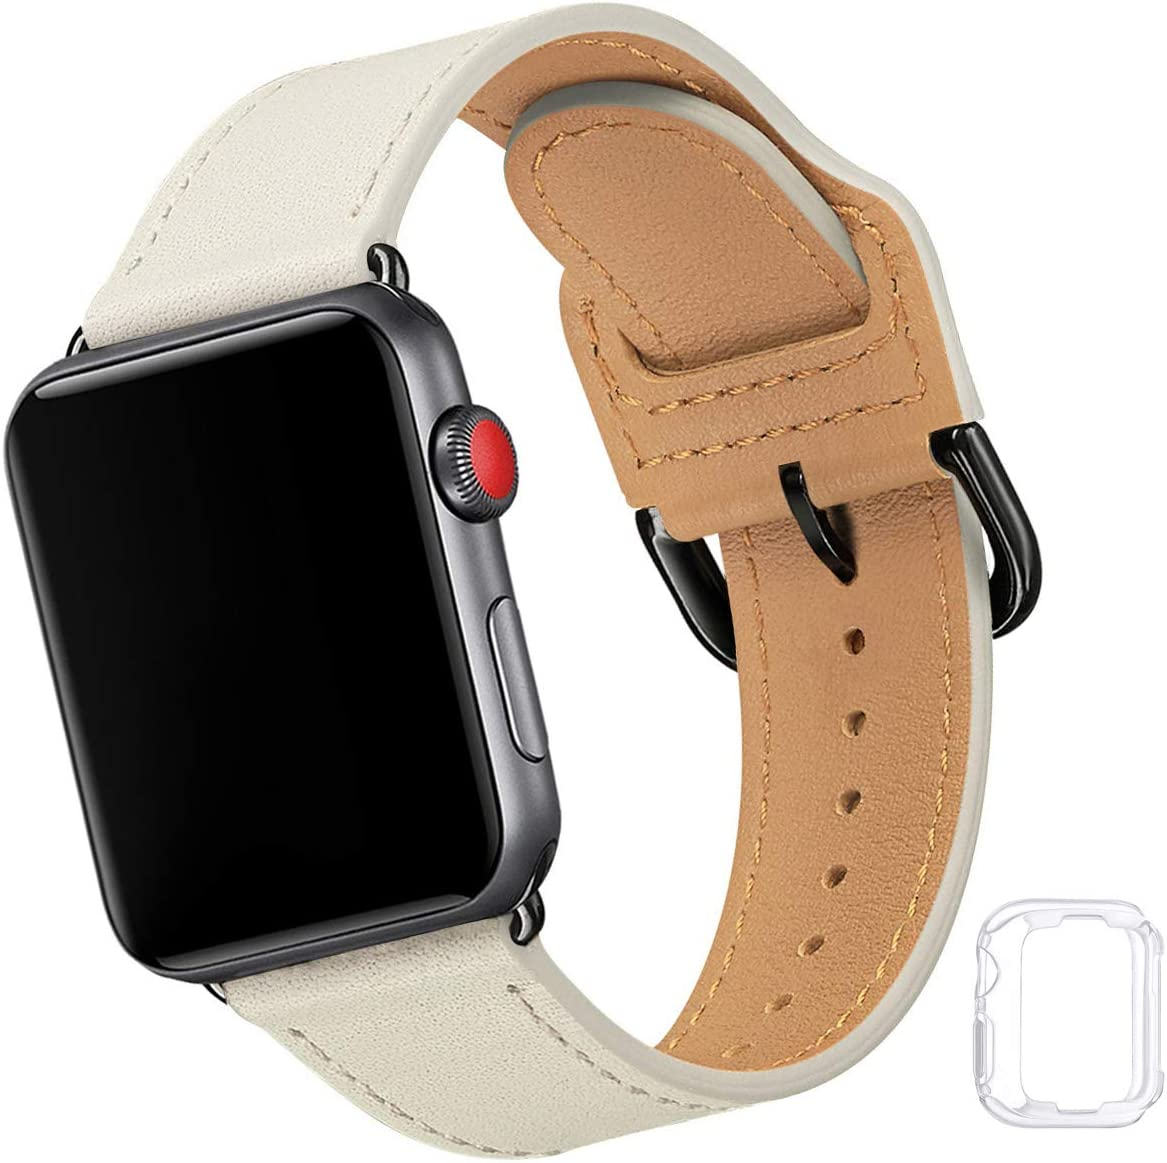 Compatible with Apple Watch Band 38mm 40mm 42mm 44mm, Soft Leather Watch Band Replacement Strap for iWatch SE Series 6 5 4 3 2 1 (Khaki with Black, 42MM/44MM)